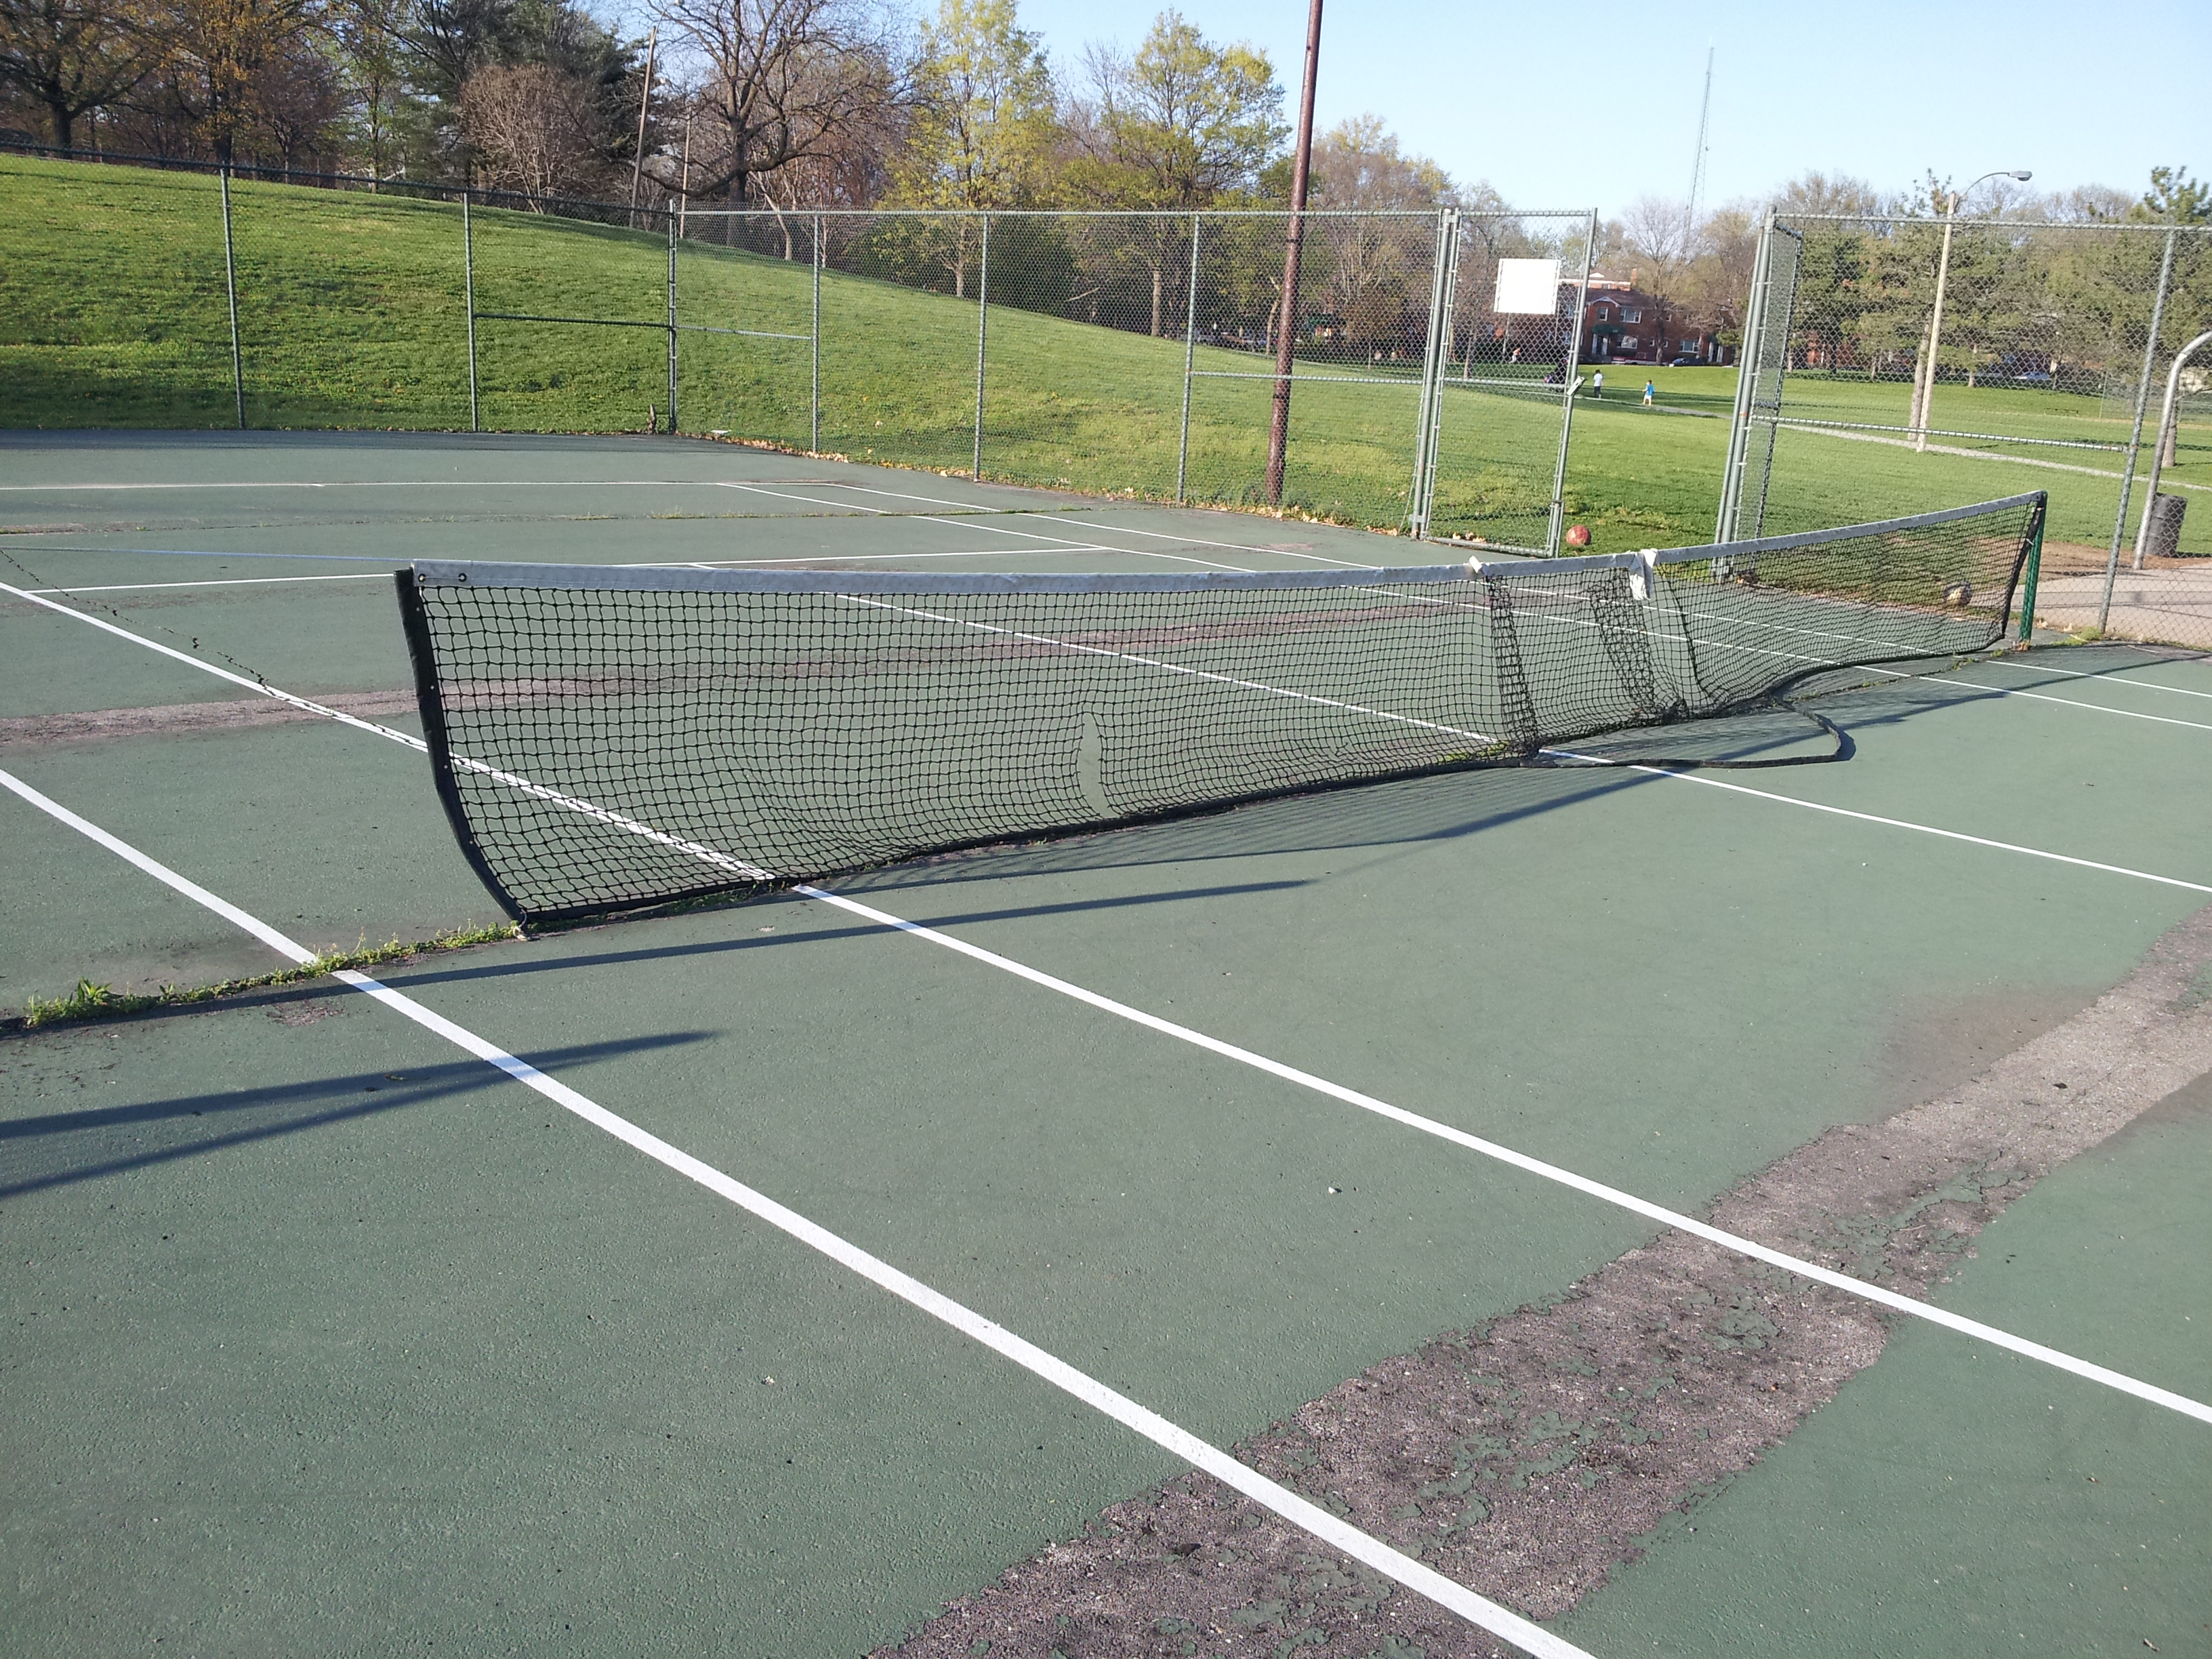 Unused and unsafe tennis courts